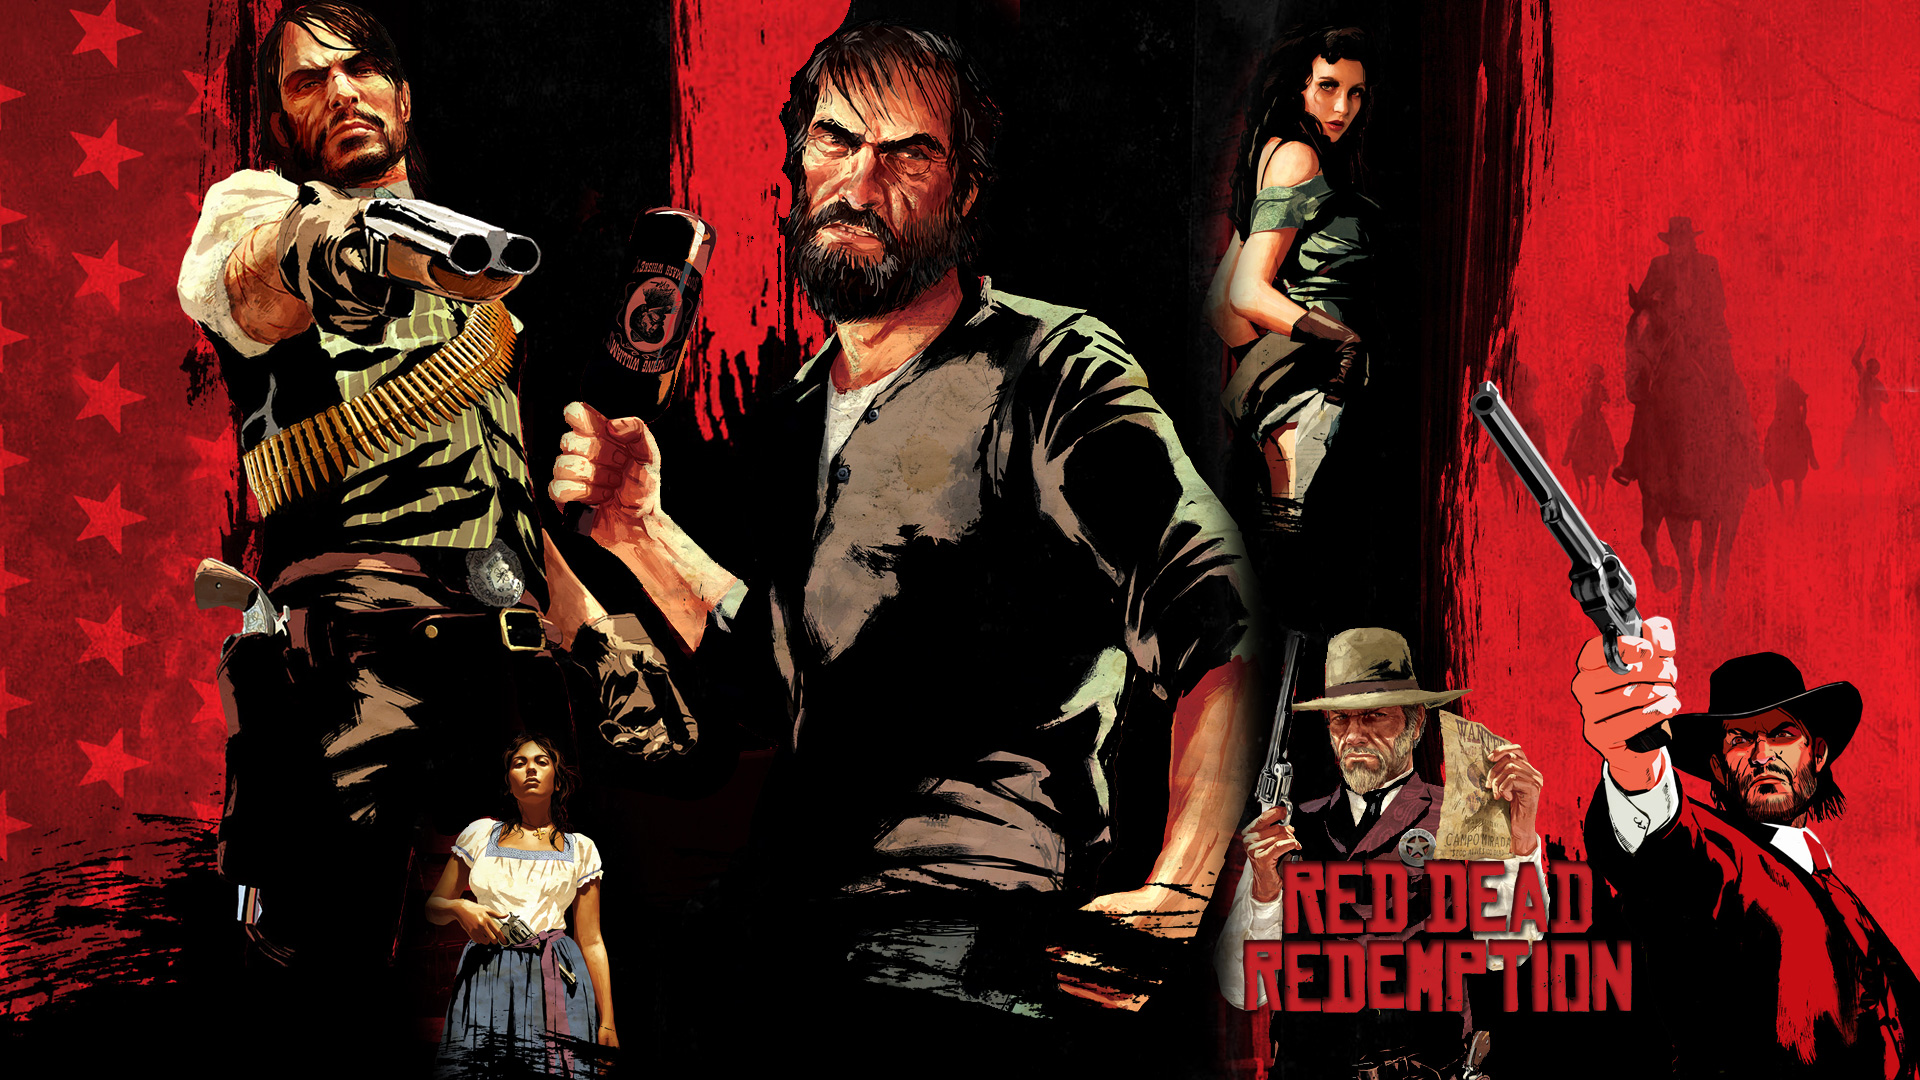 Red Dead Redemption Hd Wallpaper Background Image 1920x1080